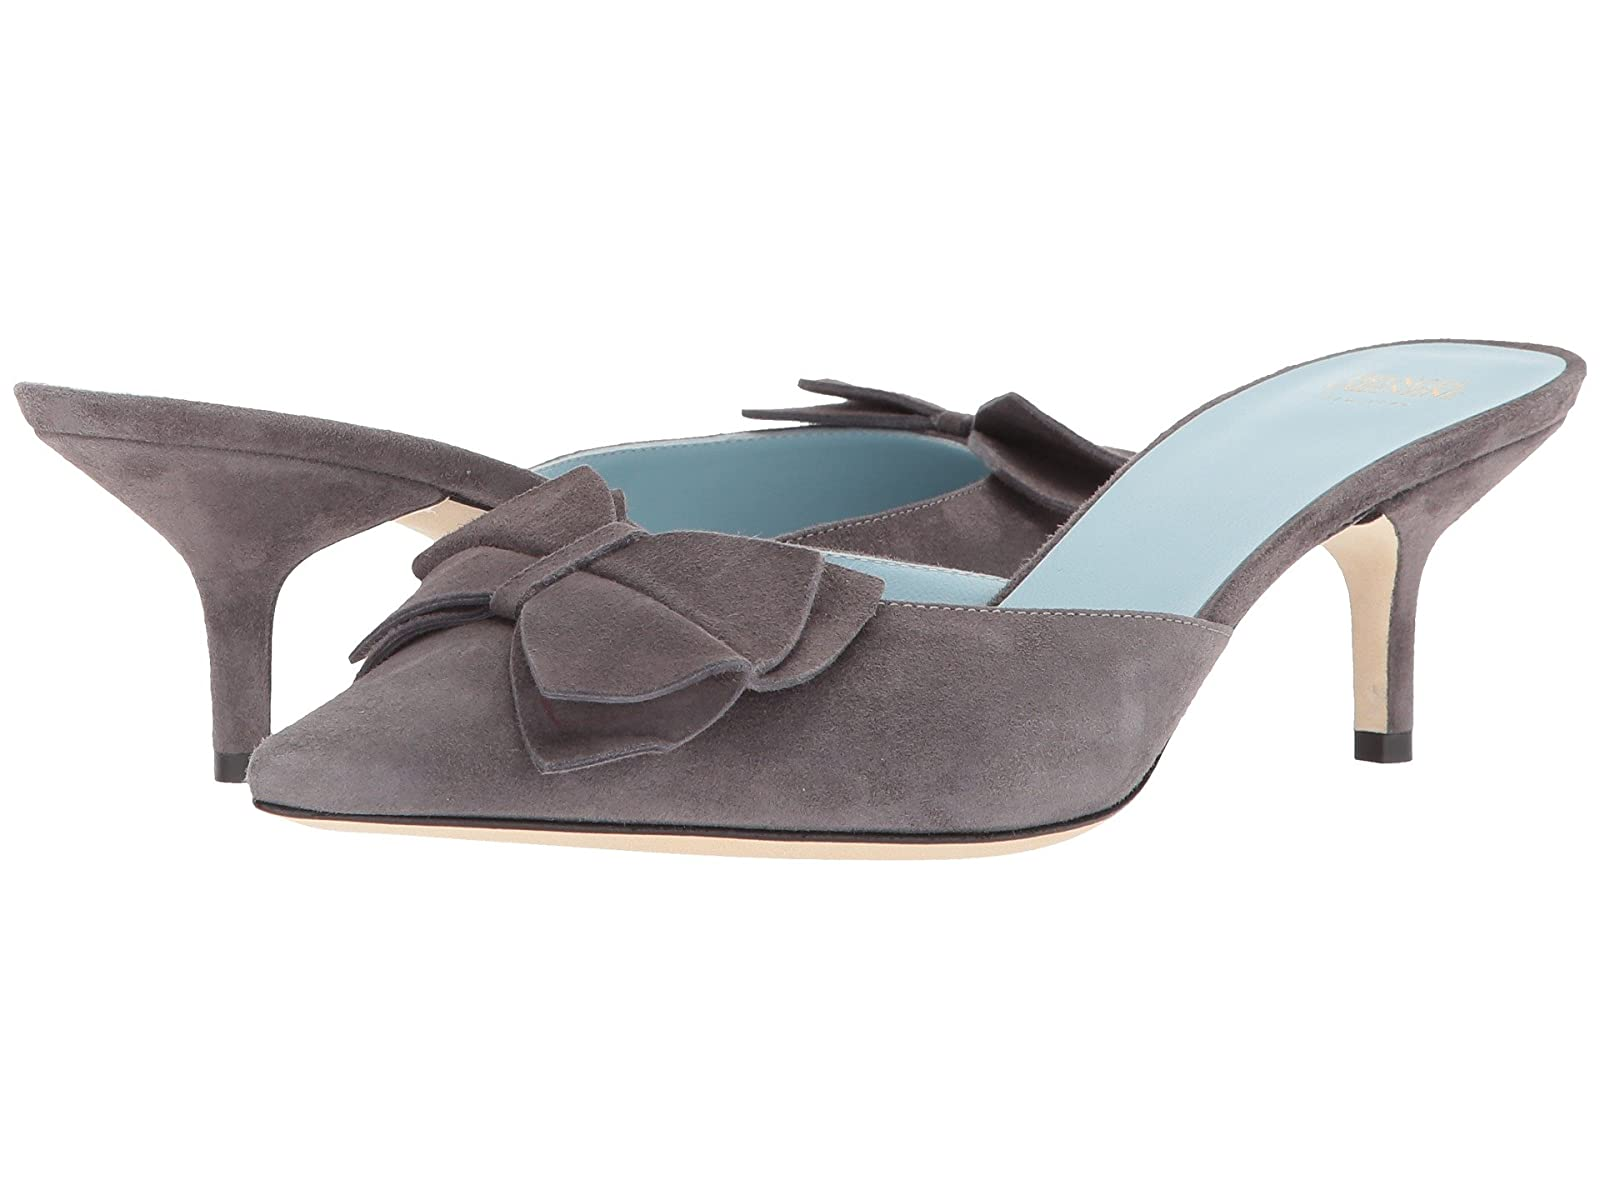 Frances Valentine GigiCheap and distinctive eye-catching shoes